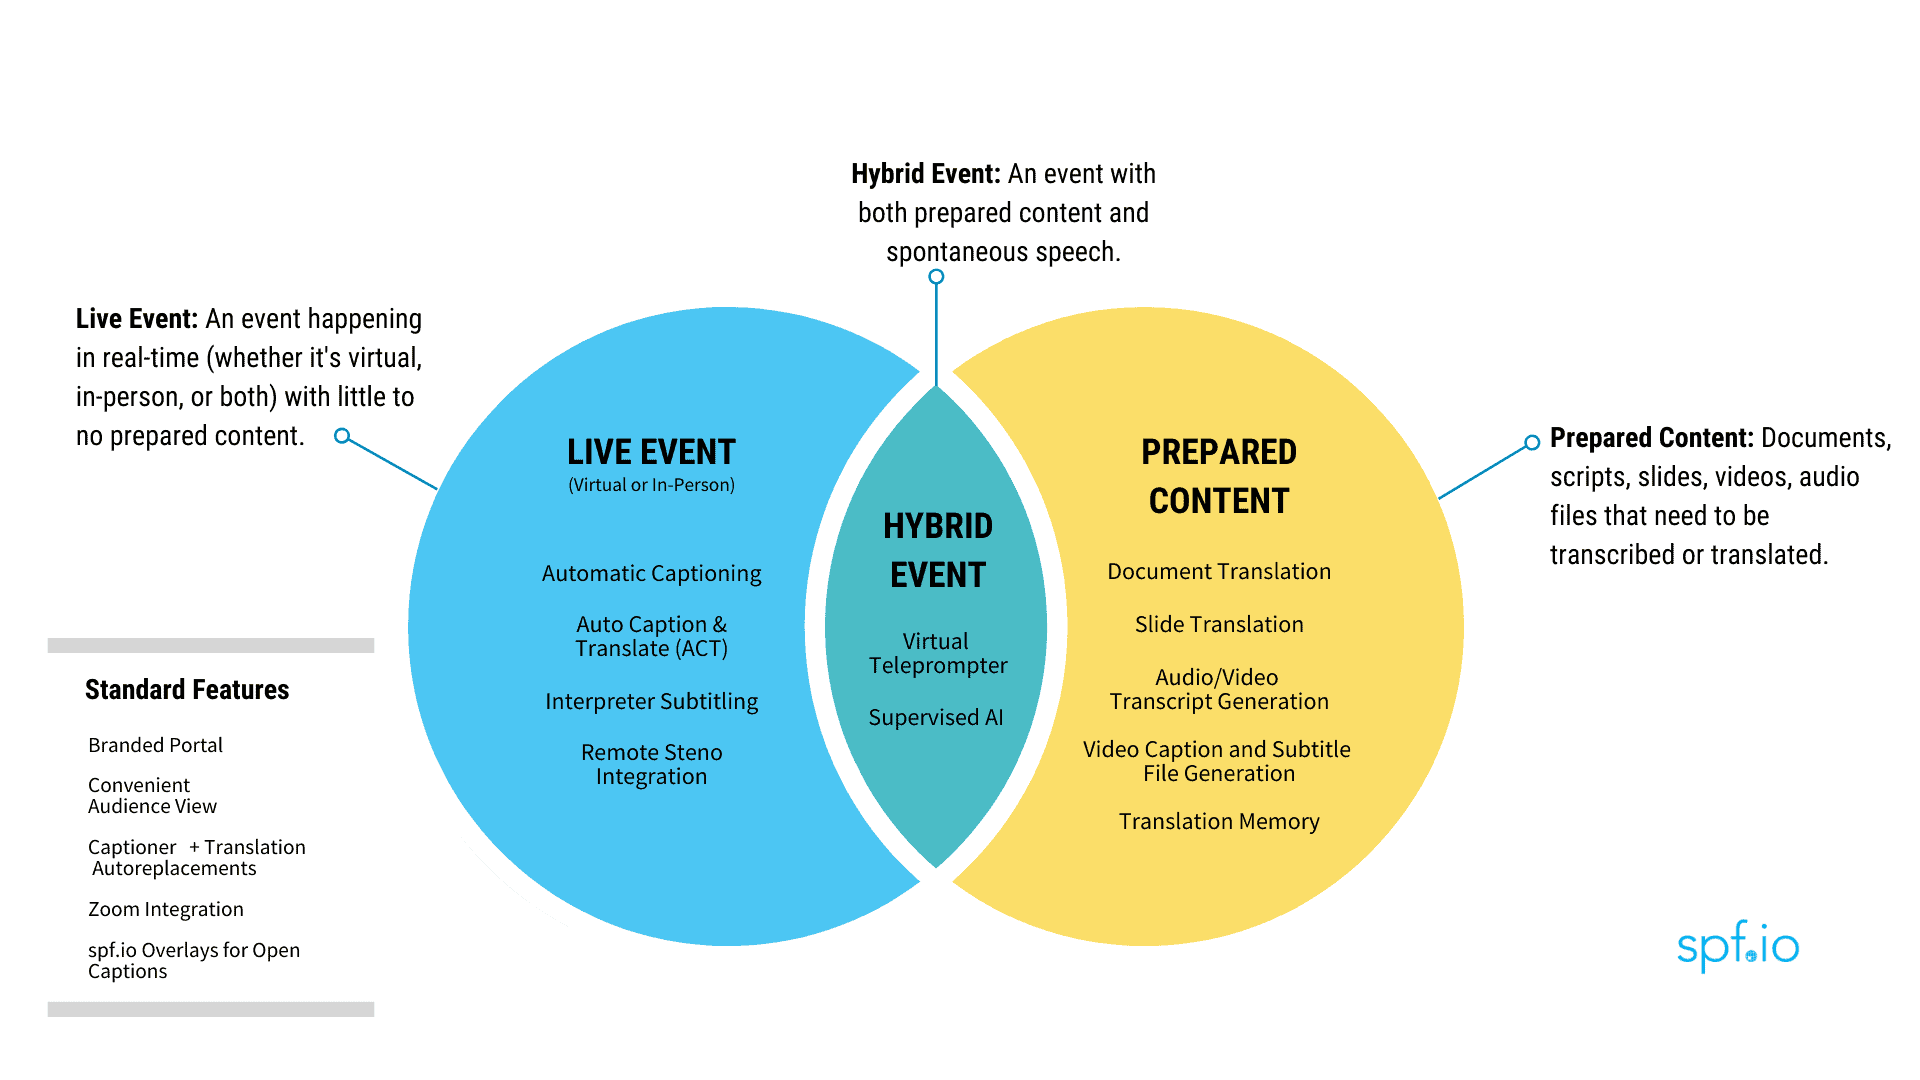 Venn diagram (from left-to-right) Live Event - Hybrid Event - Prepared Content with list of features under each heading